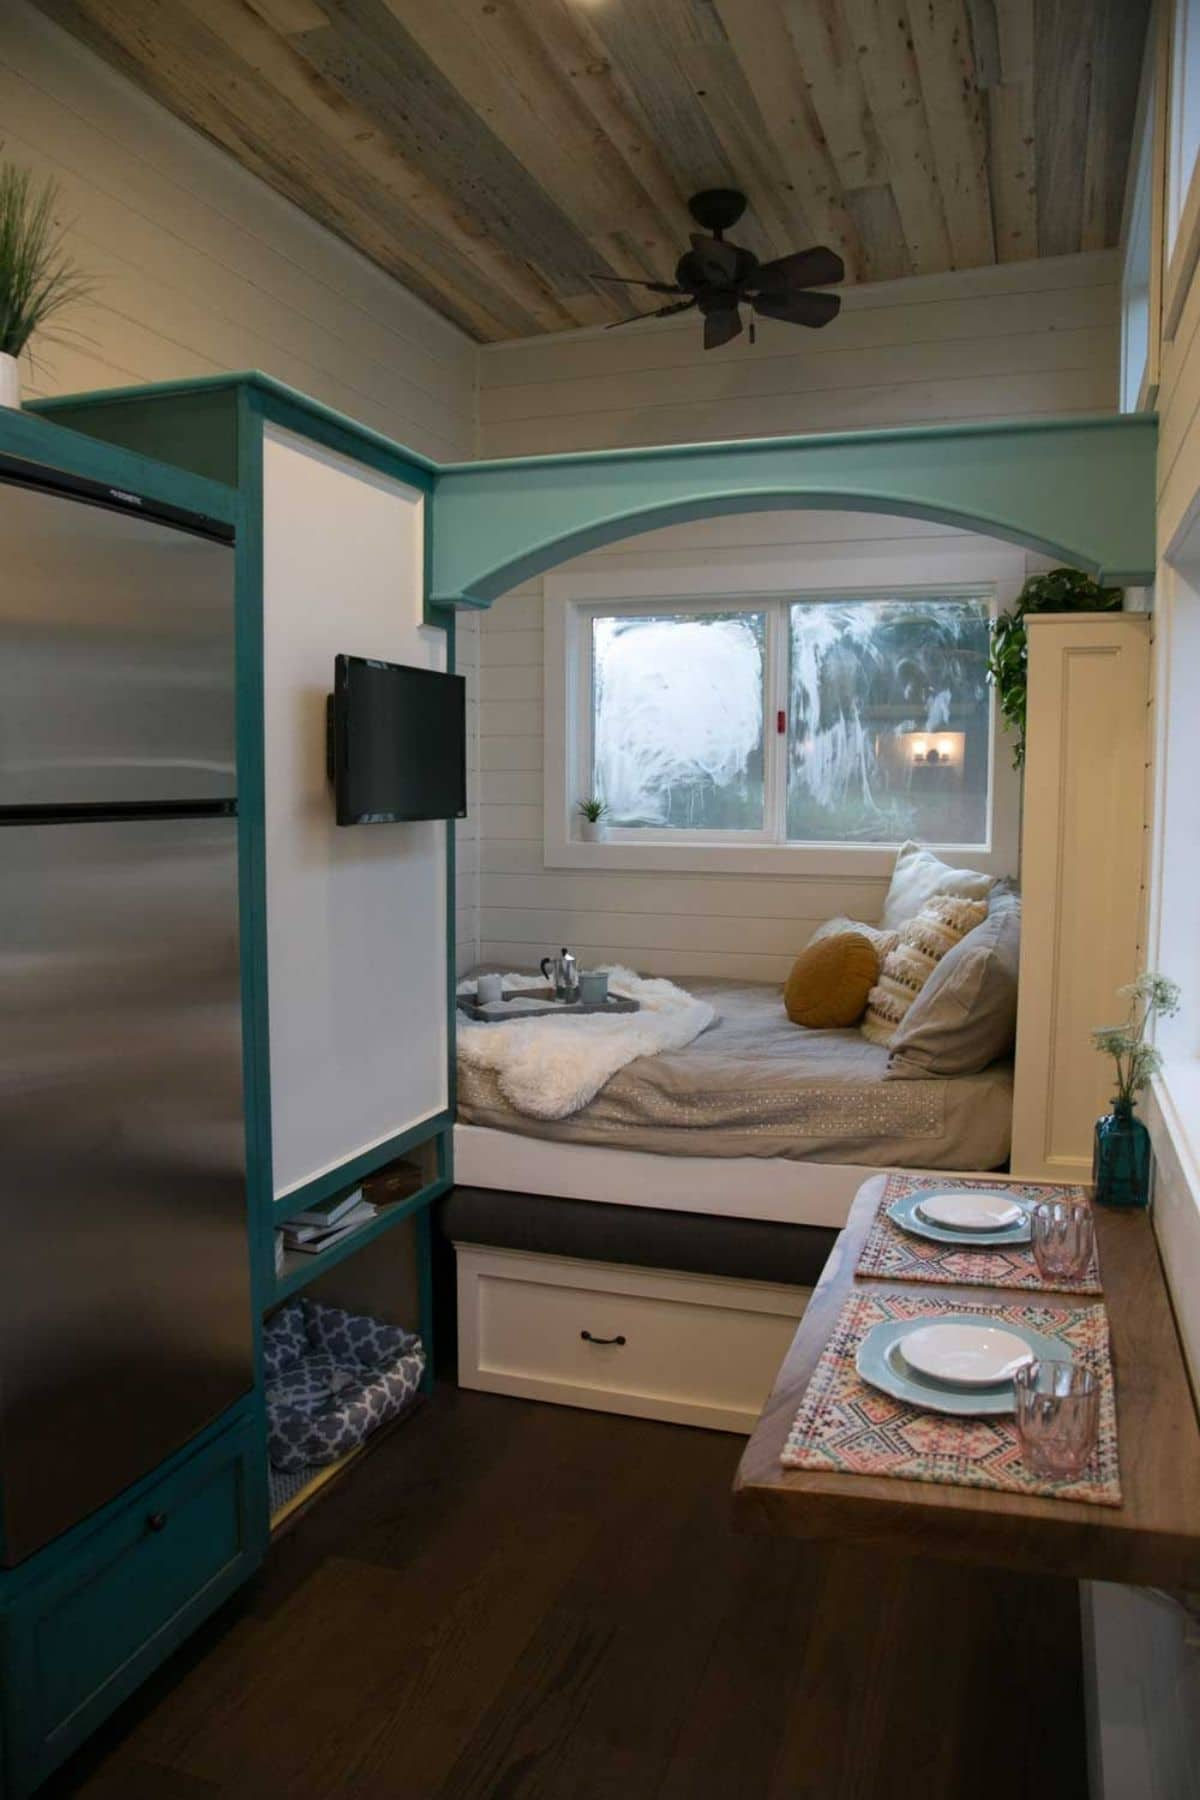 View of living space with convertible sofa bed in tiny home